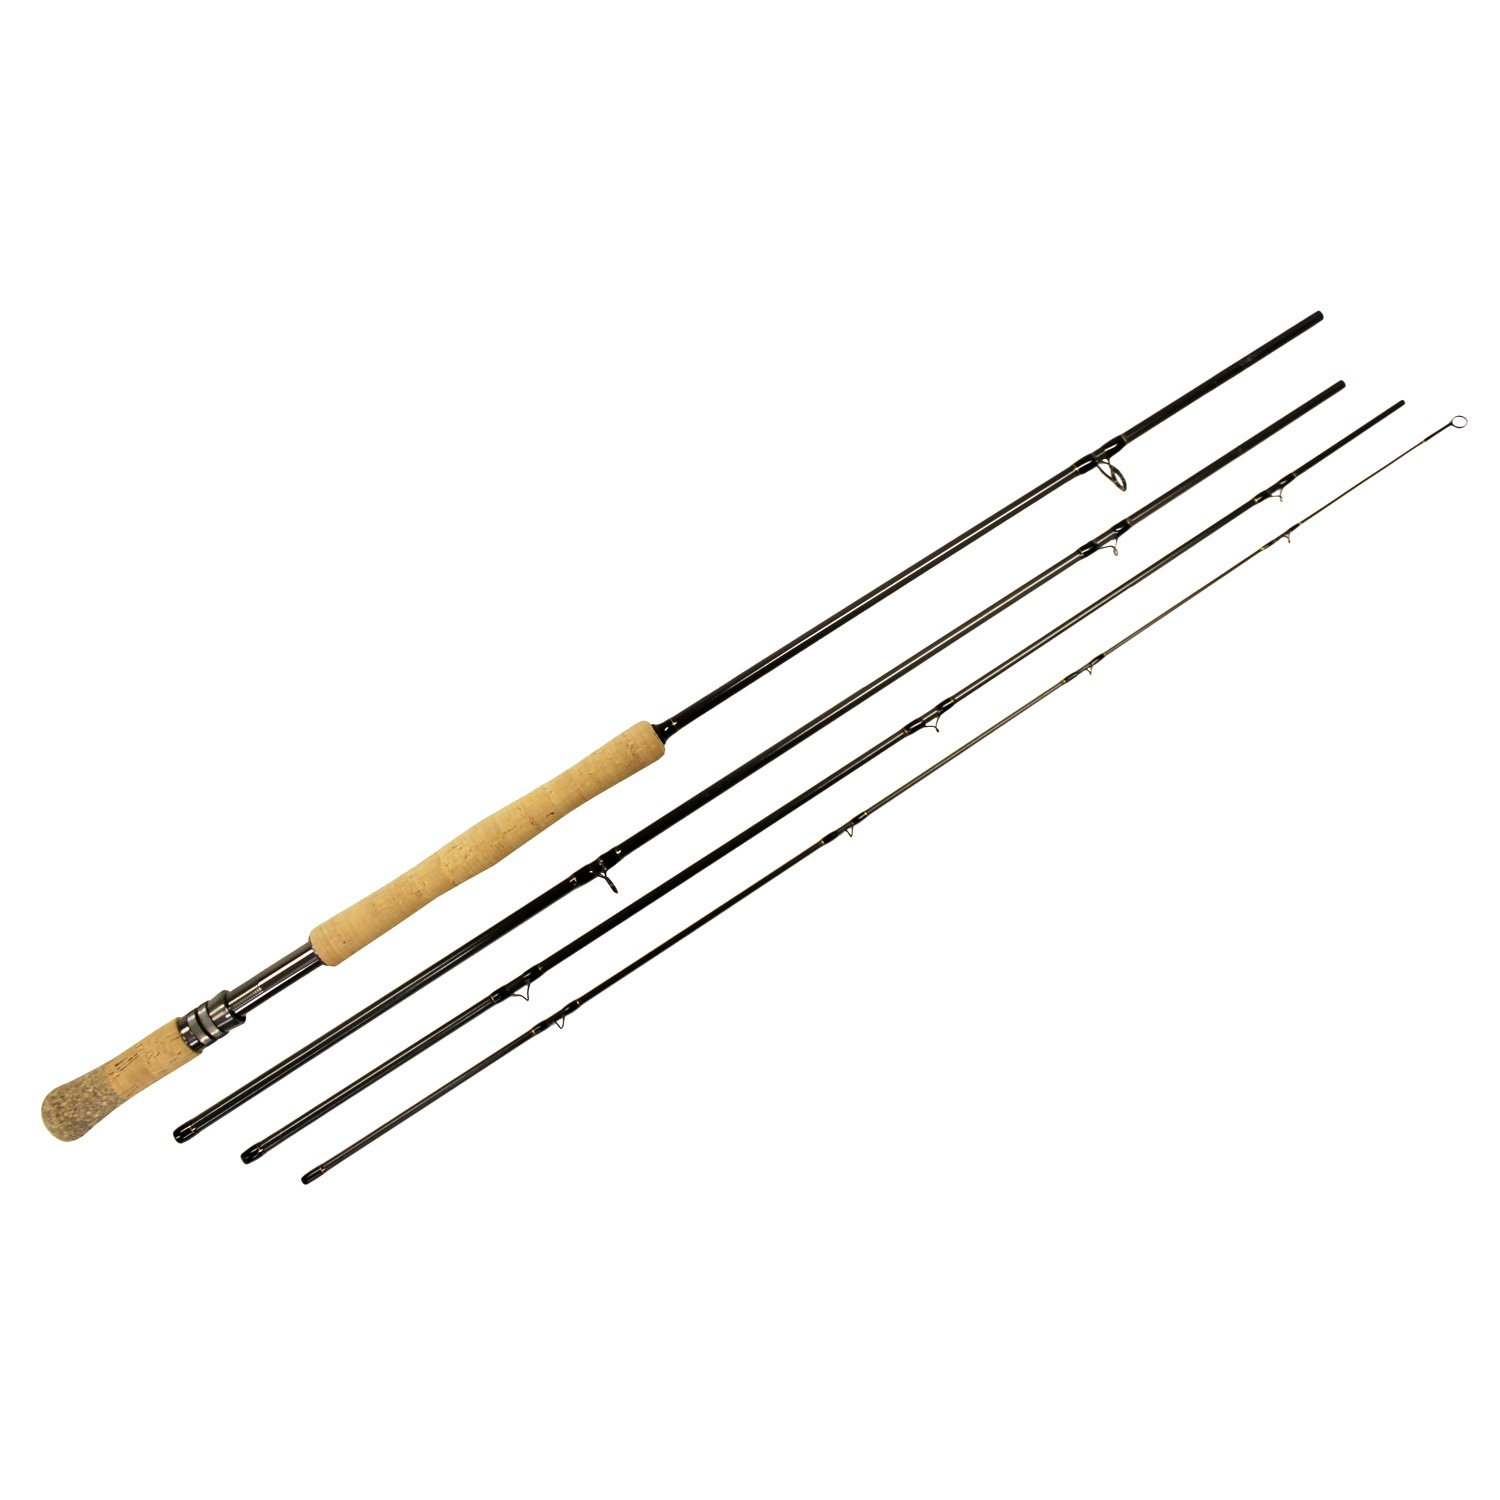 Shu-Fly Switch 7 Fly Fishing Rod (4-Piece), Black, 11-Feet